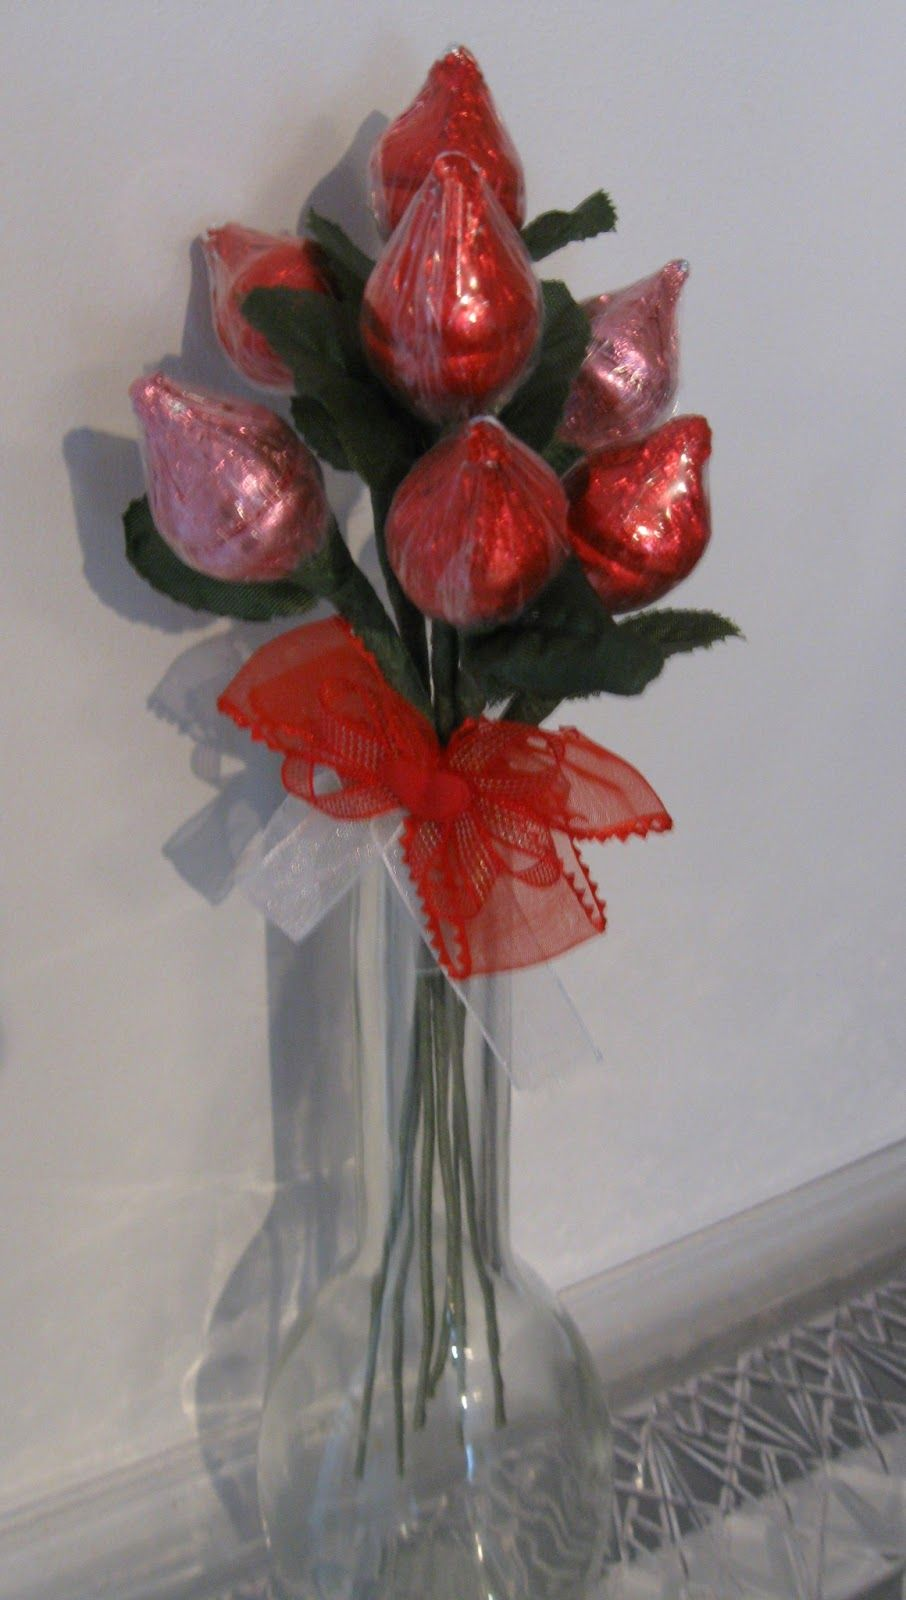 A crafty idea for Valentine's Day. Hershey's Kisses Roses ...